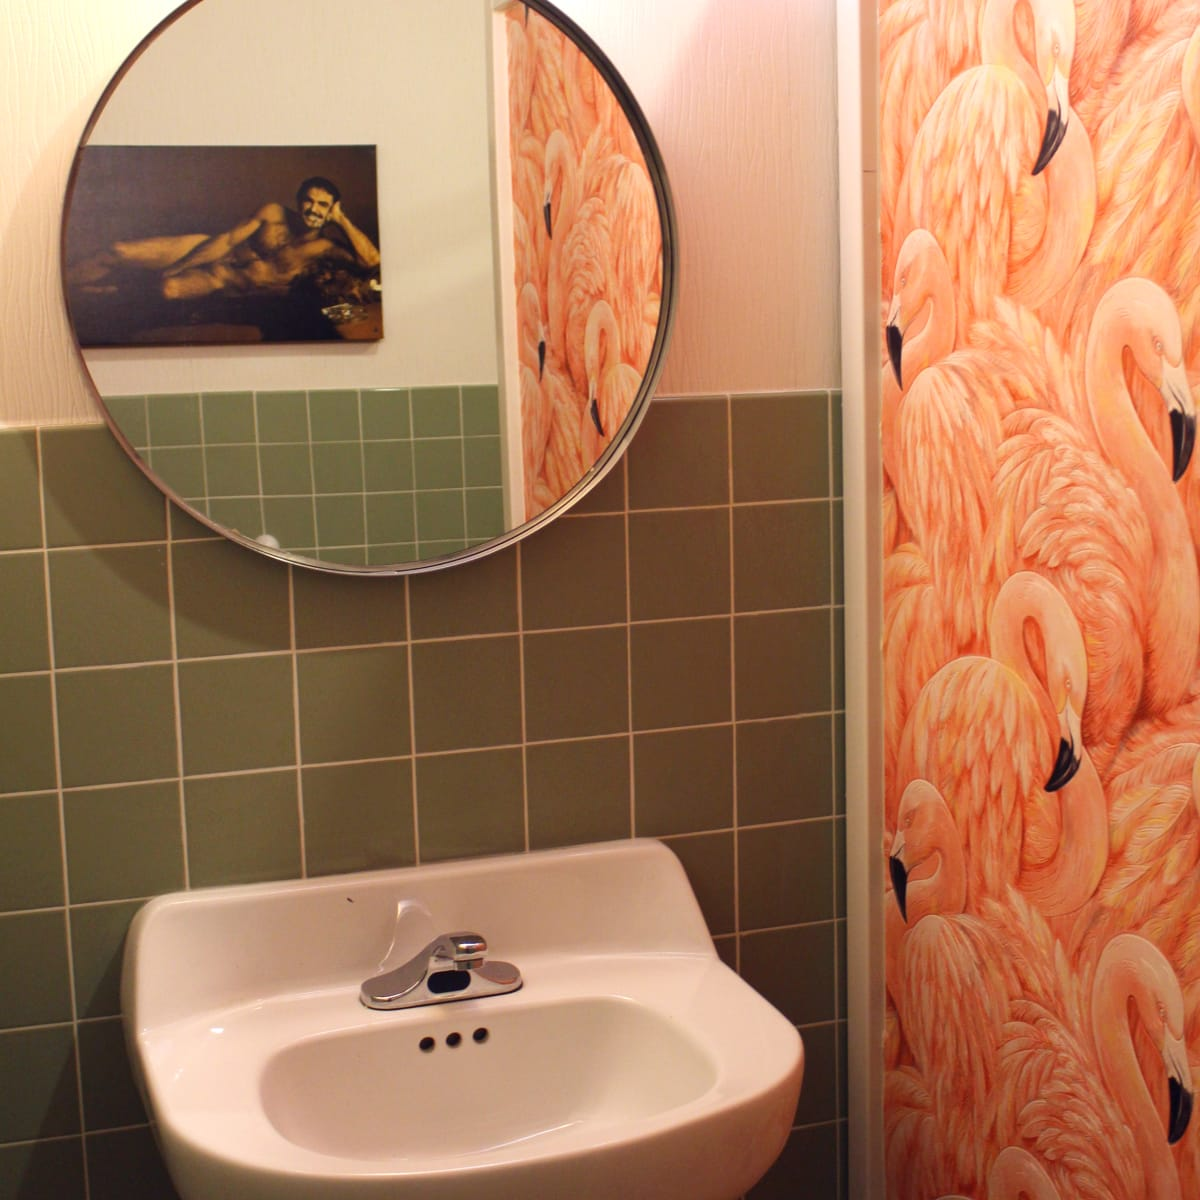 Kitty Cohen's Austin bar women bathroom flamingo